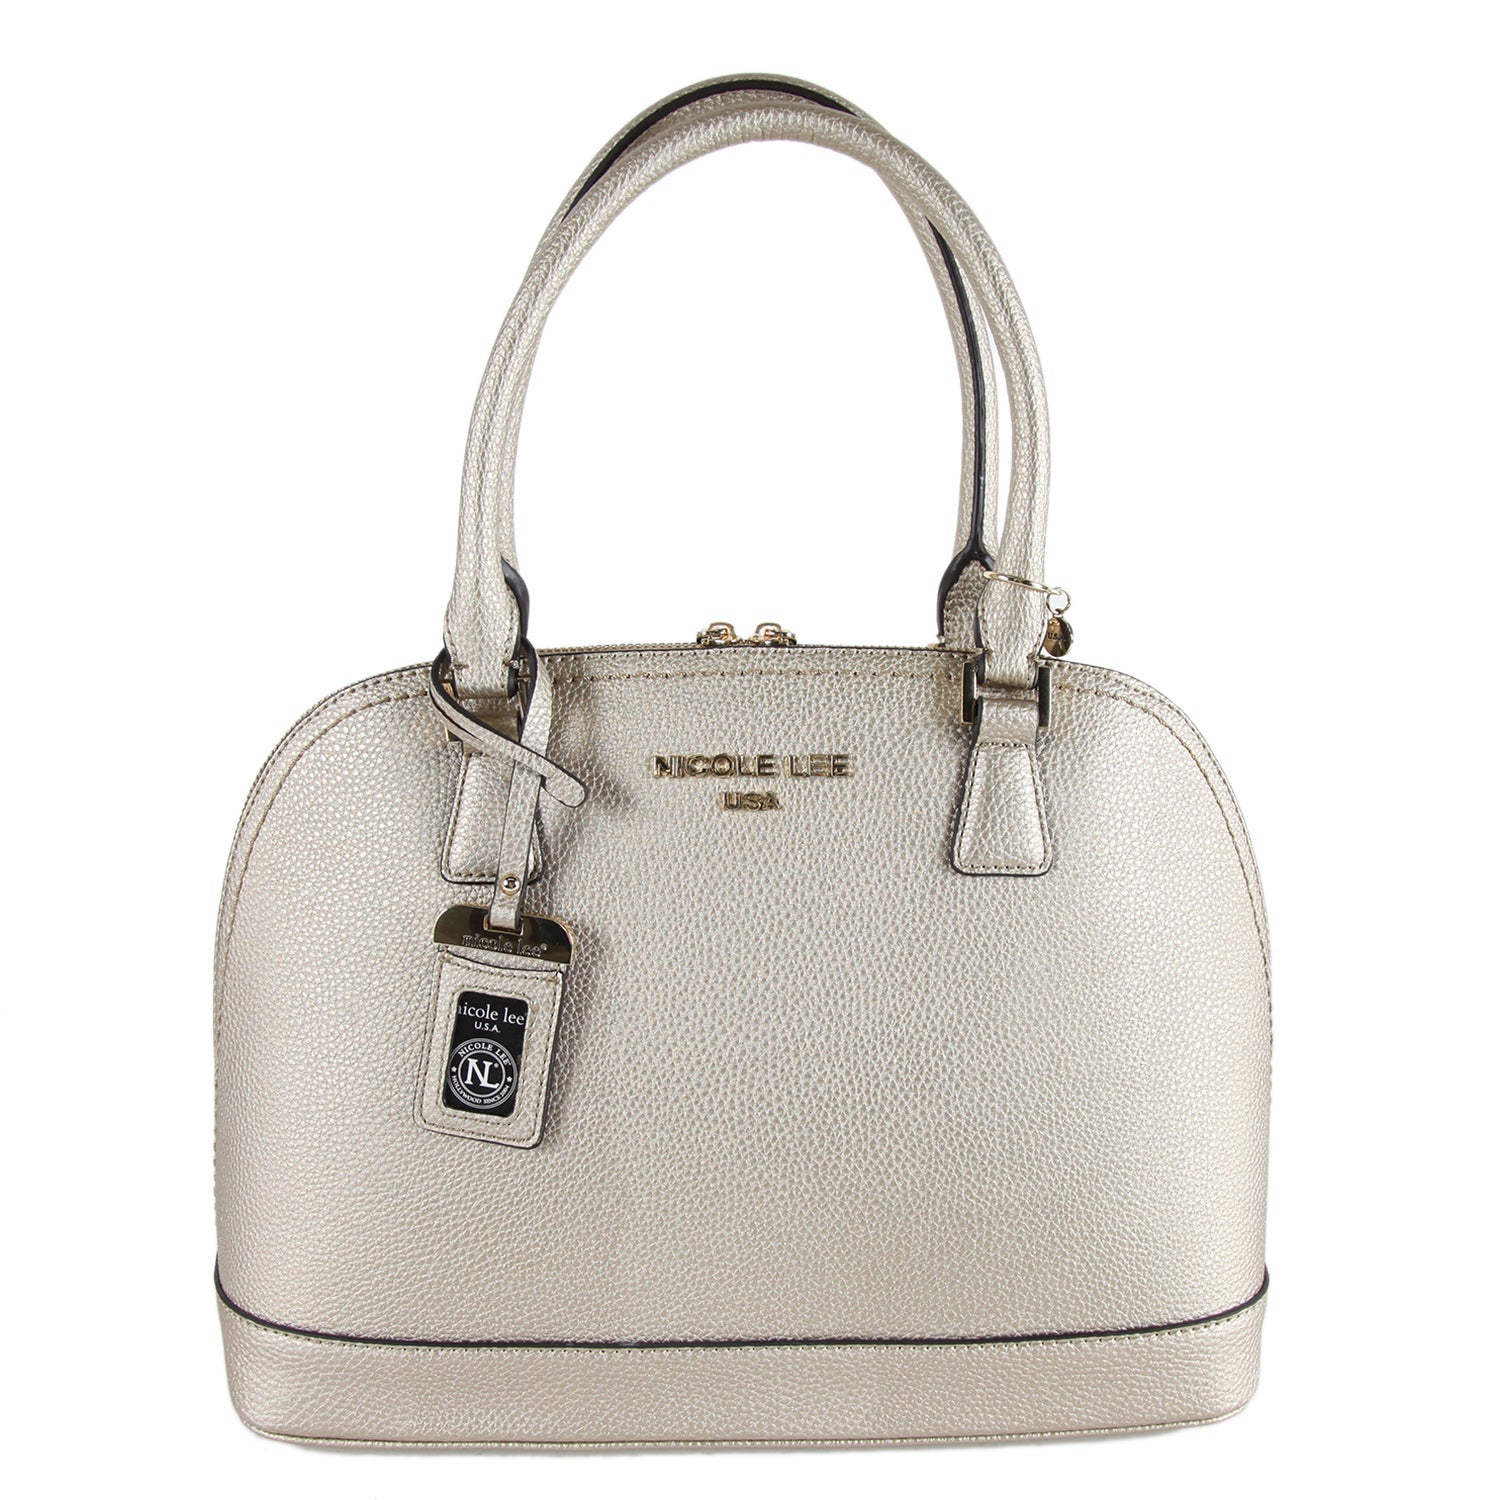 Nicole Lee Kiley Pewter Dome Satchel Handbag (Pewter), Wo...